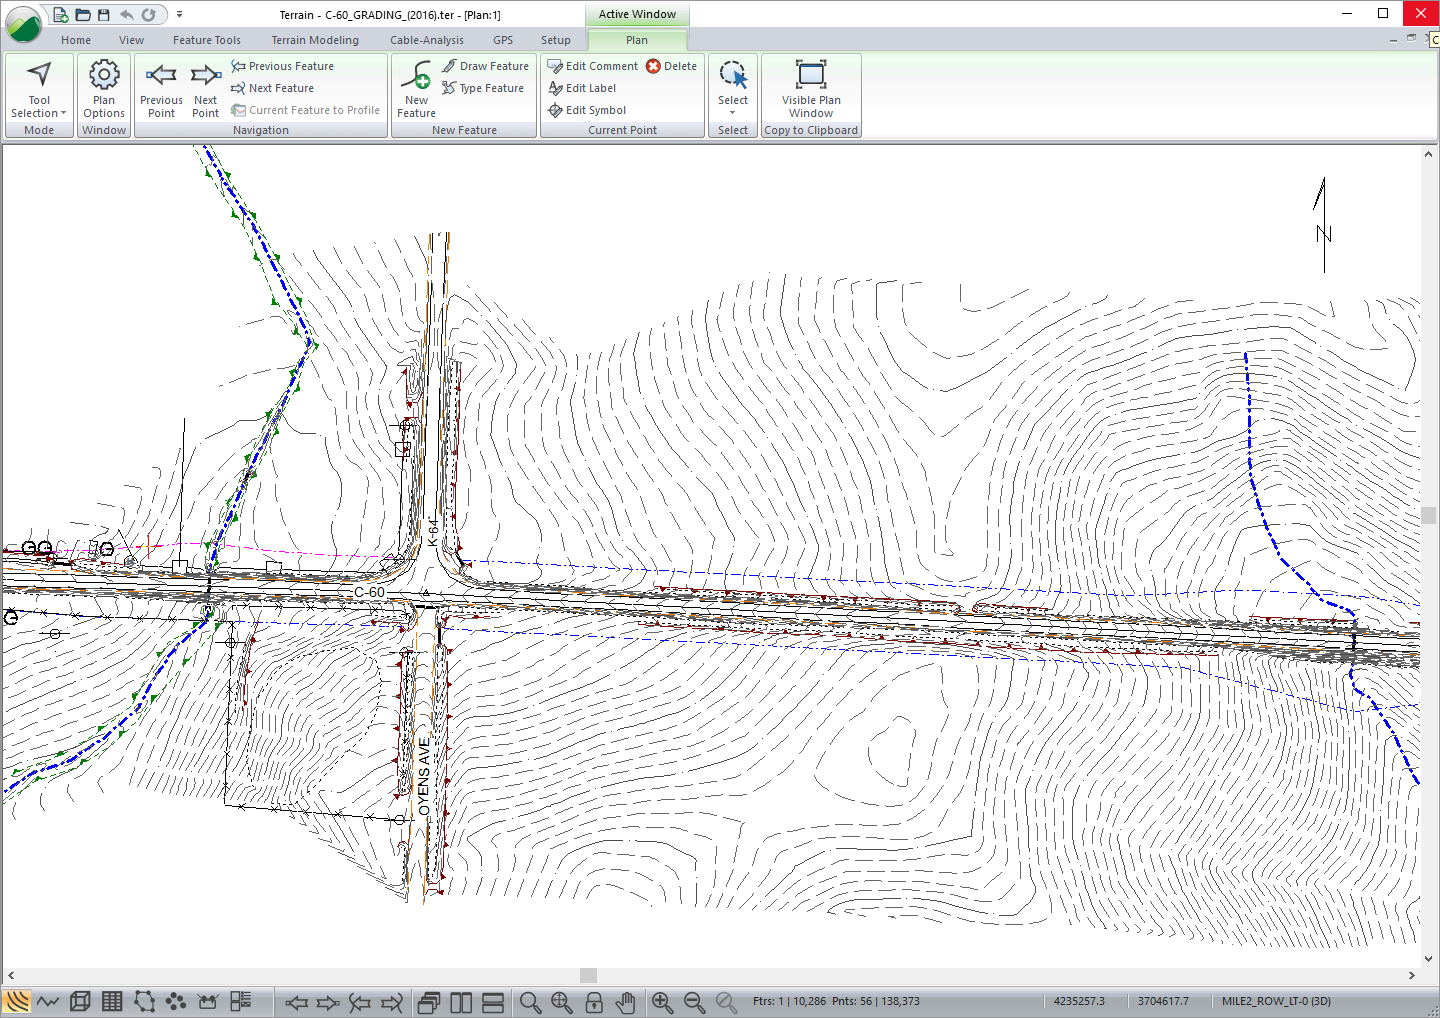 3D Mapping & Site Design Software for Engineers - Terrain Tools